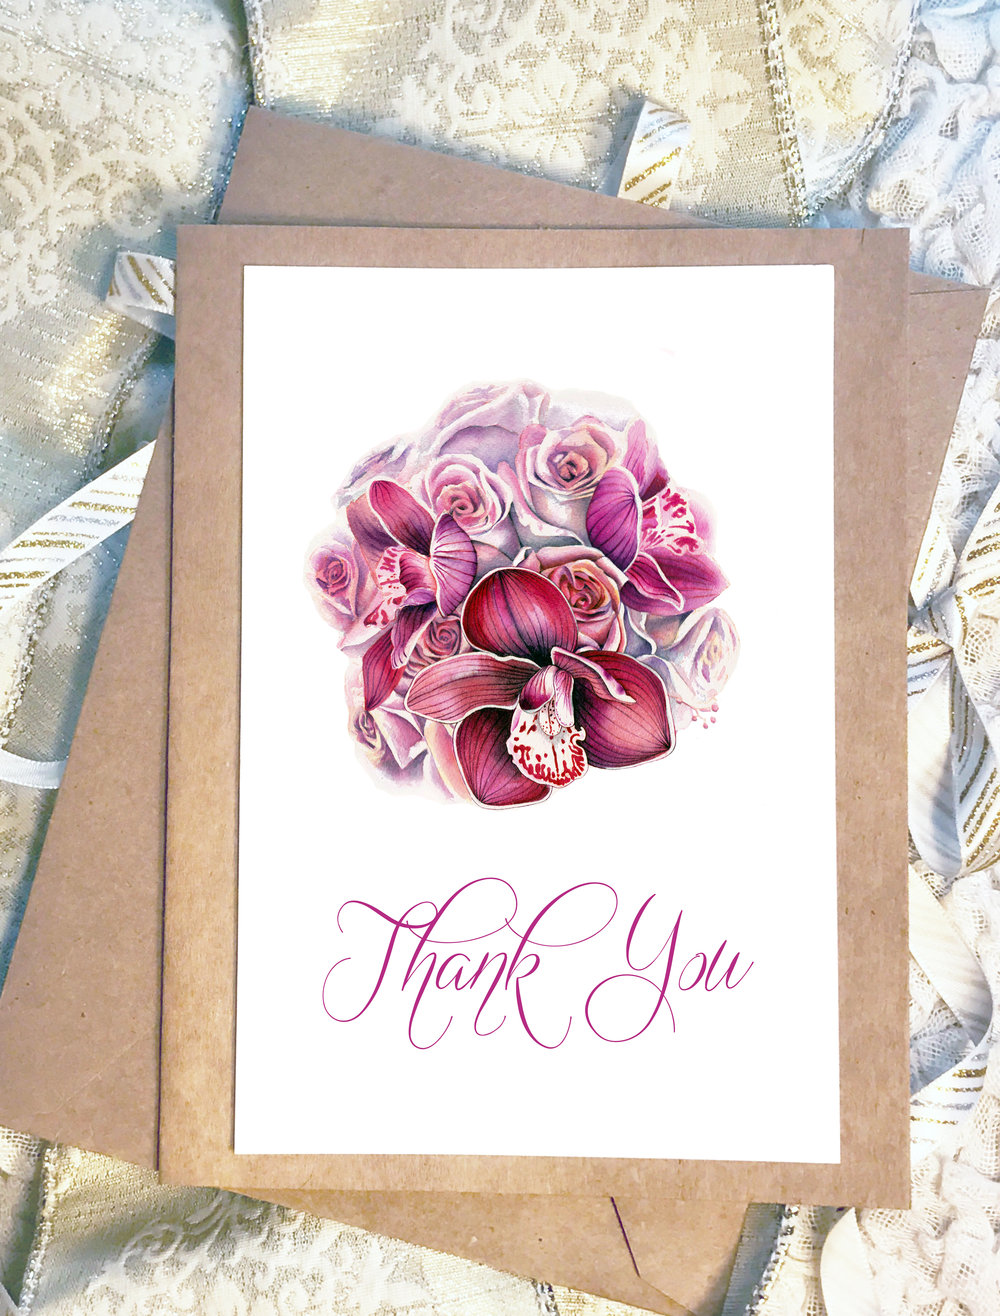 - Thank-you Cards packages: • 25 custom cards/envelopes $50 • 50 custom cards/envelopes $90 • 100 custom cards/envelopes $150 • 250 custom cards/envelopes $350 • 500 custom cards/envelopes $500 • larger quantities, please contact us for bulk pricing!